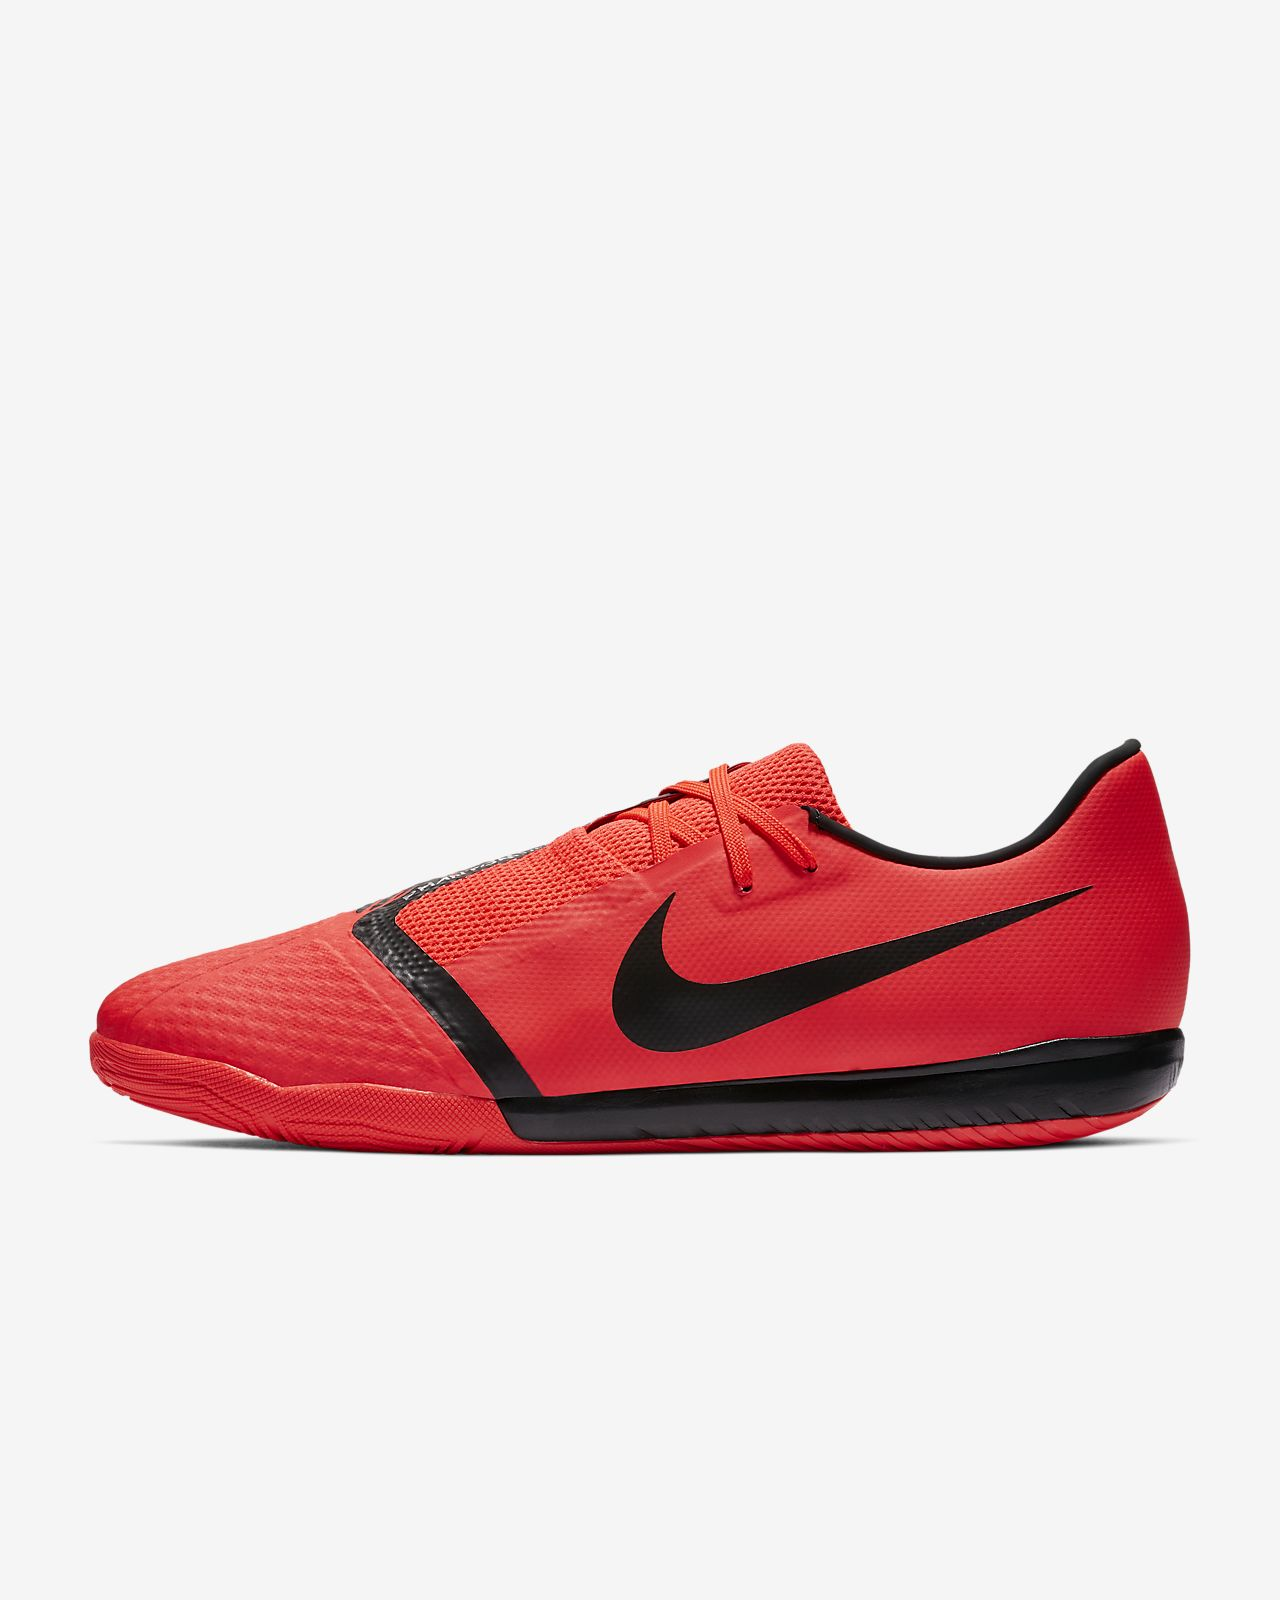 Nike PhantomVNM Academy IC Game Over Indoor/Court Football Boot